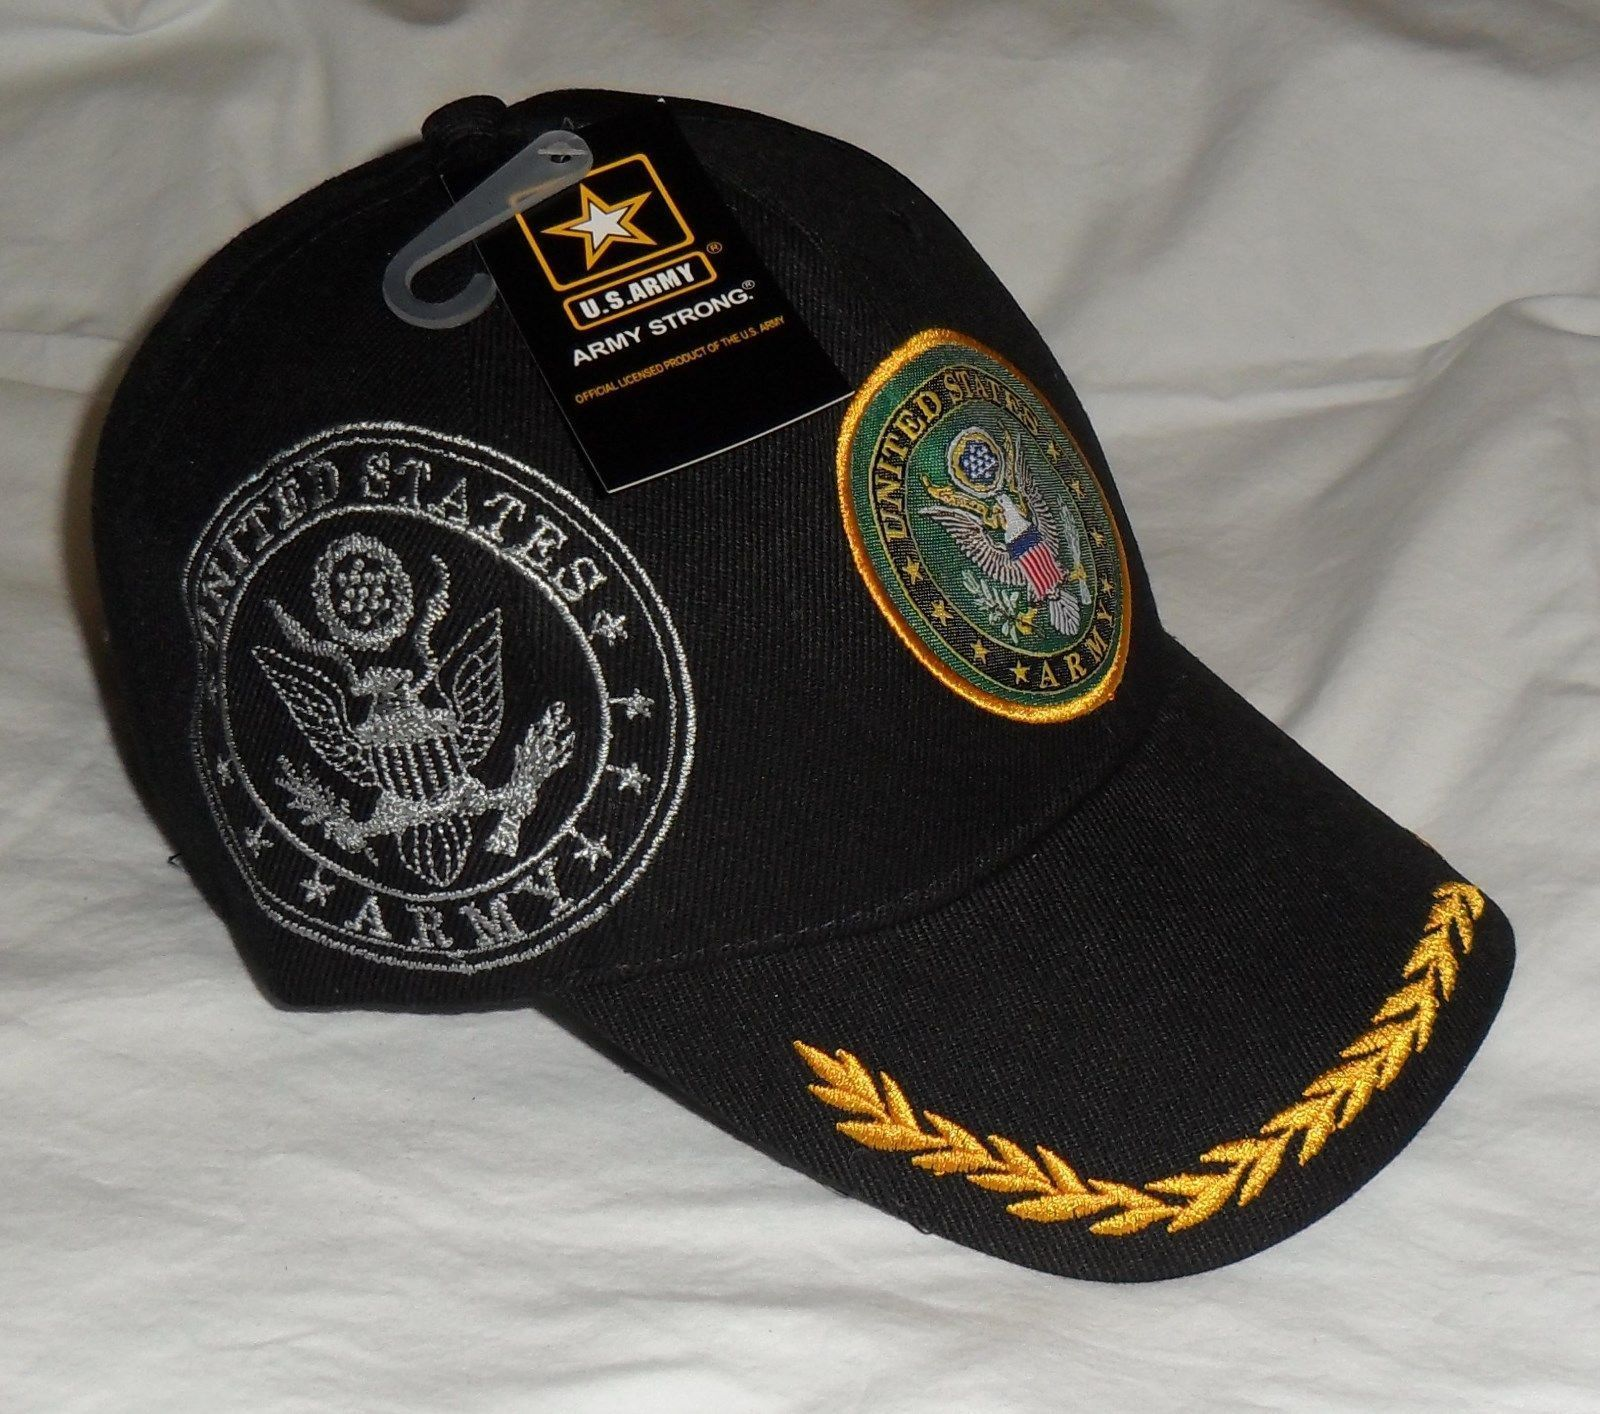 United States Army Shadow Cap OFFICIALLY LICENSED With Seal Baseball Cap Hat